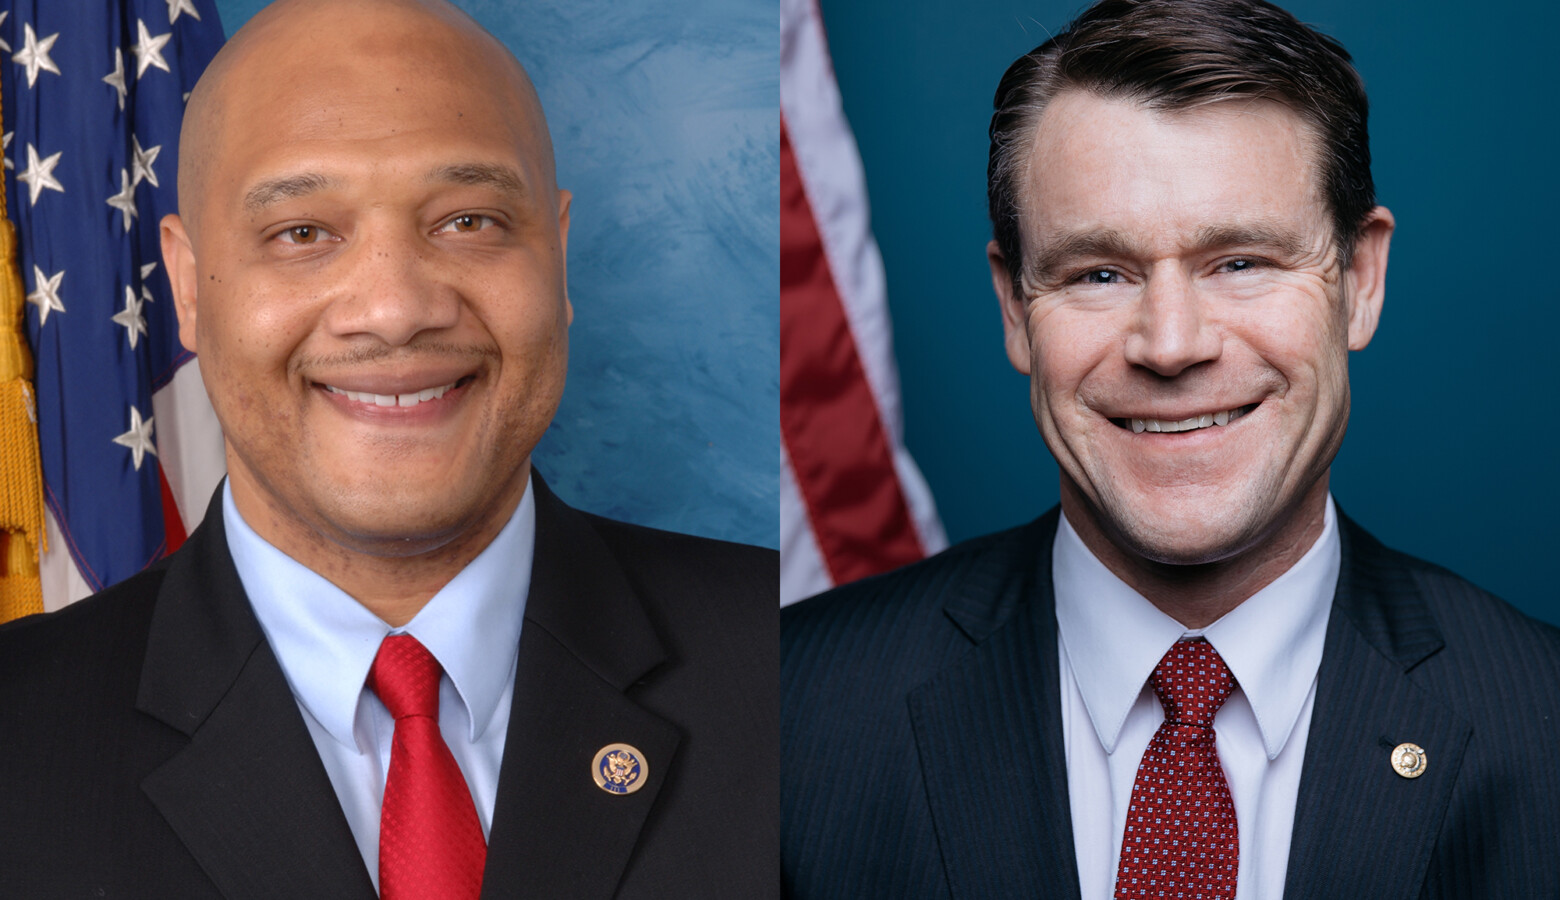 U.S. Rep. André Carson (D-Indianapolis), left, is a strong backer of President Joe Biden's agenda. U.S. Sen. Todd Young (R-Ind.), right, said there are some areas of agreement. (Congress.gov)